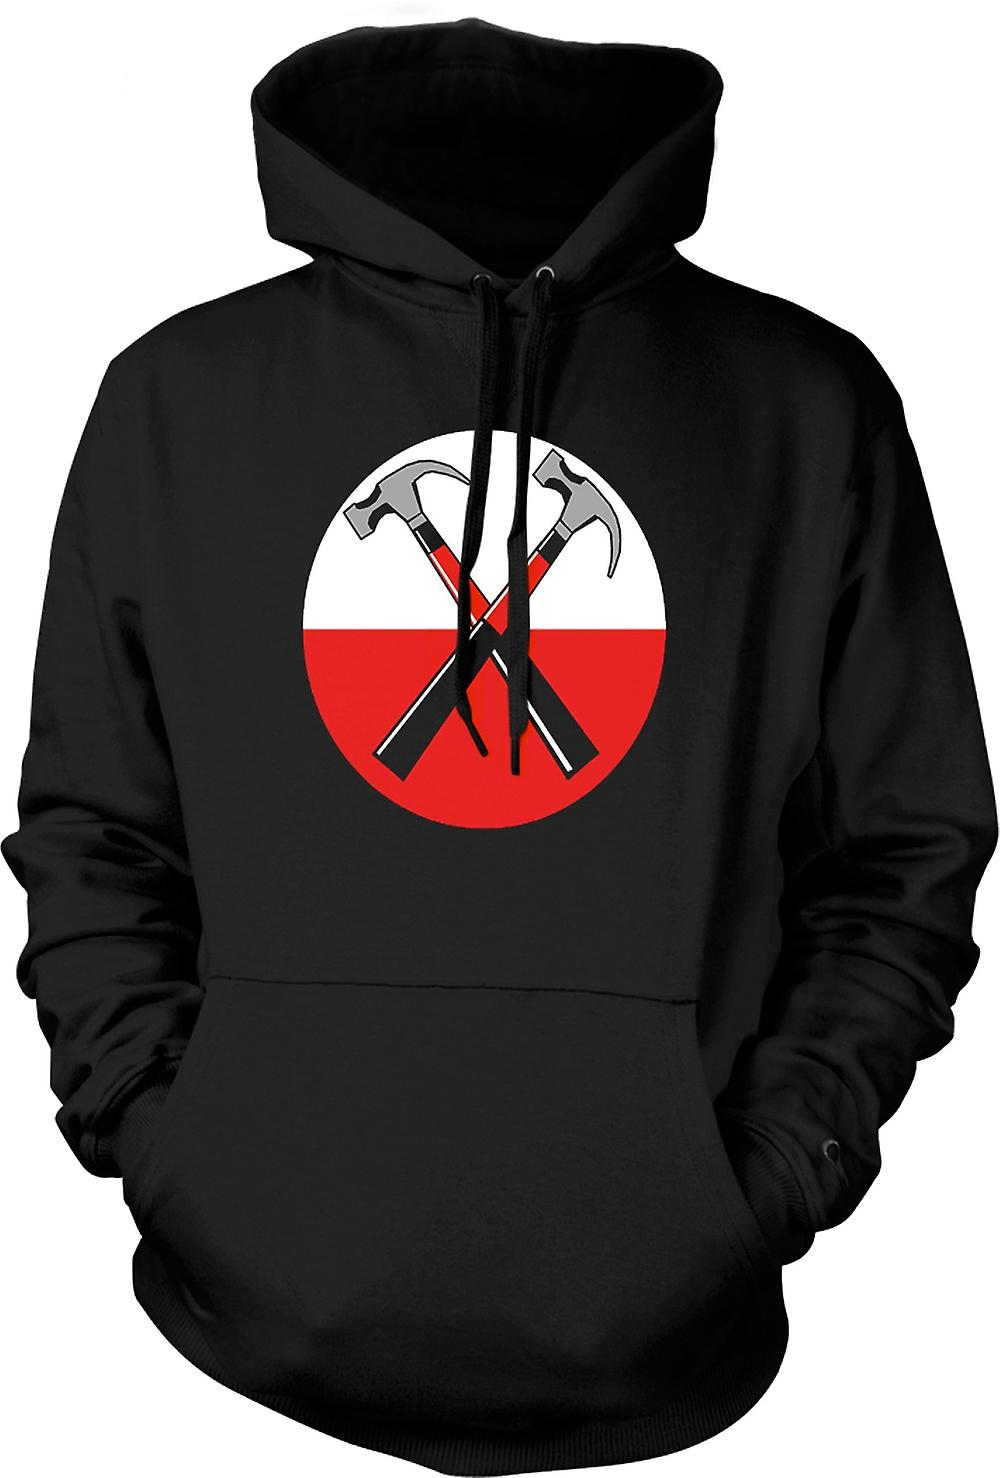 Mens Hoodie - Pink Floyd - The Wall Doppia Hammer